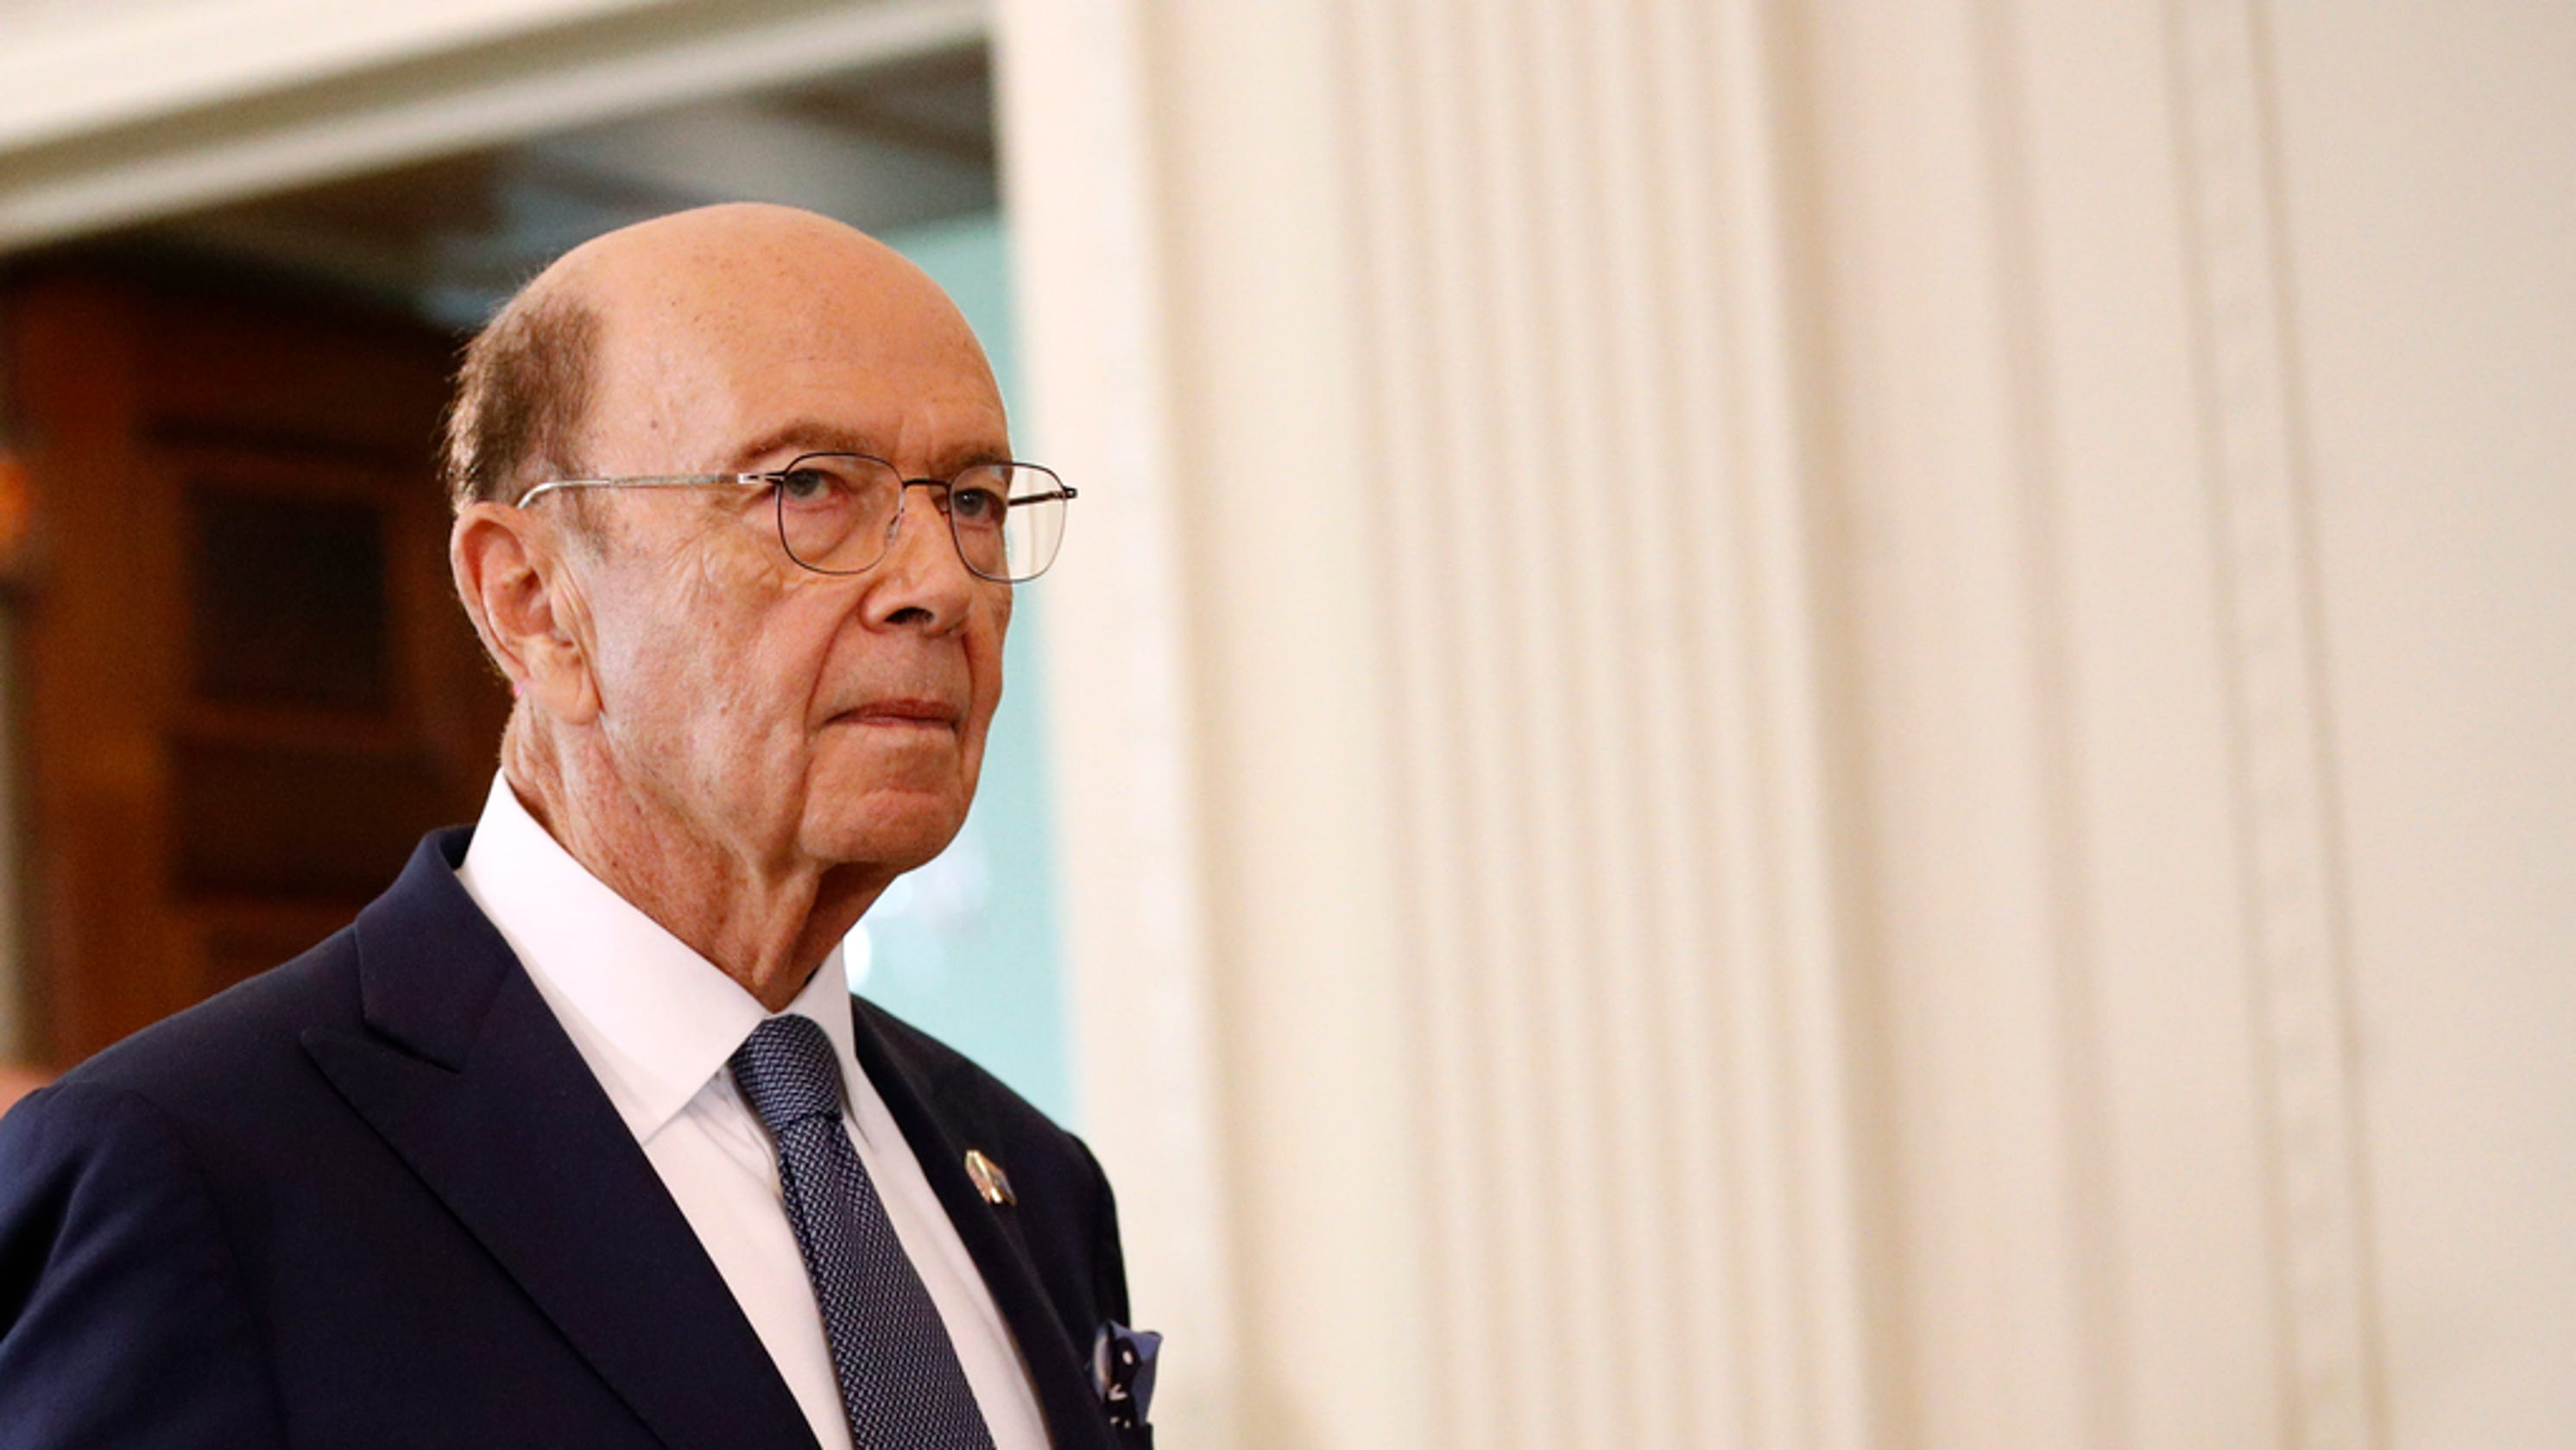 Westlake Legal Group 82c51759-216c-4af9-911d-9887759e58d5-AP_Trump_US_Australia_State_Visit 'Somebody wake up Wilbur Ross!': Social media users say Commerce chief asleep during Trump UN speech